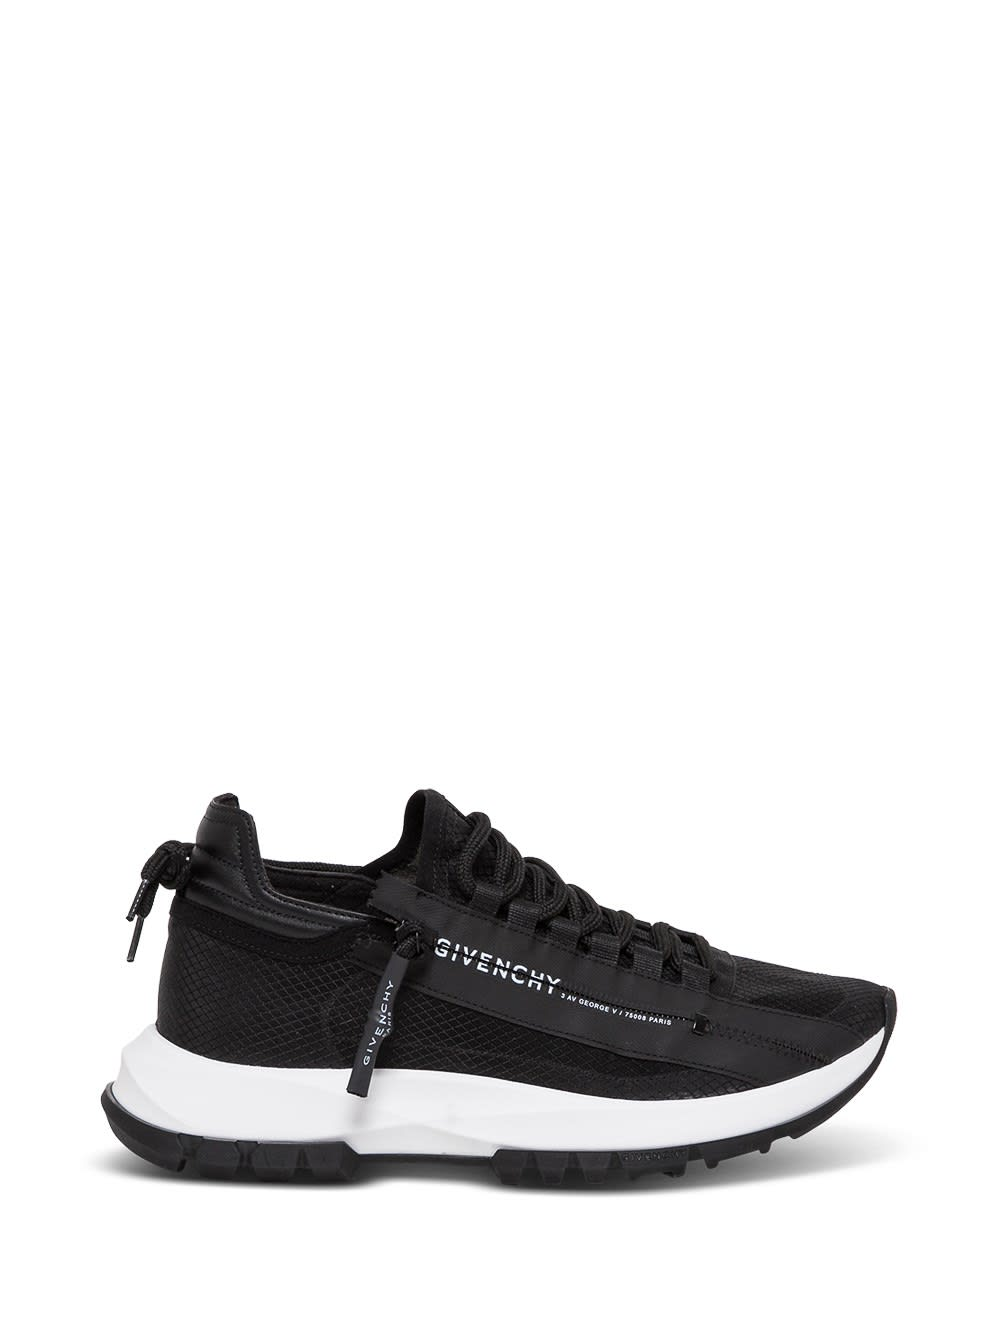 Givenchy SPECTER LOW LEATHER AND MESH SNEAKERS WITH ZIP